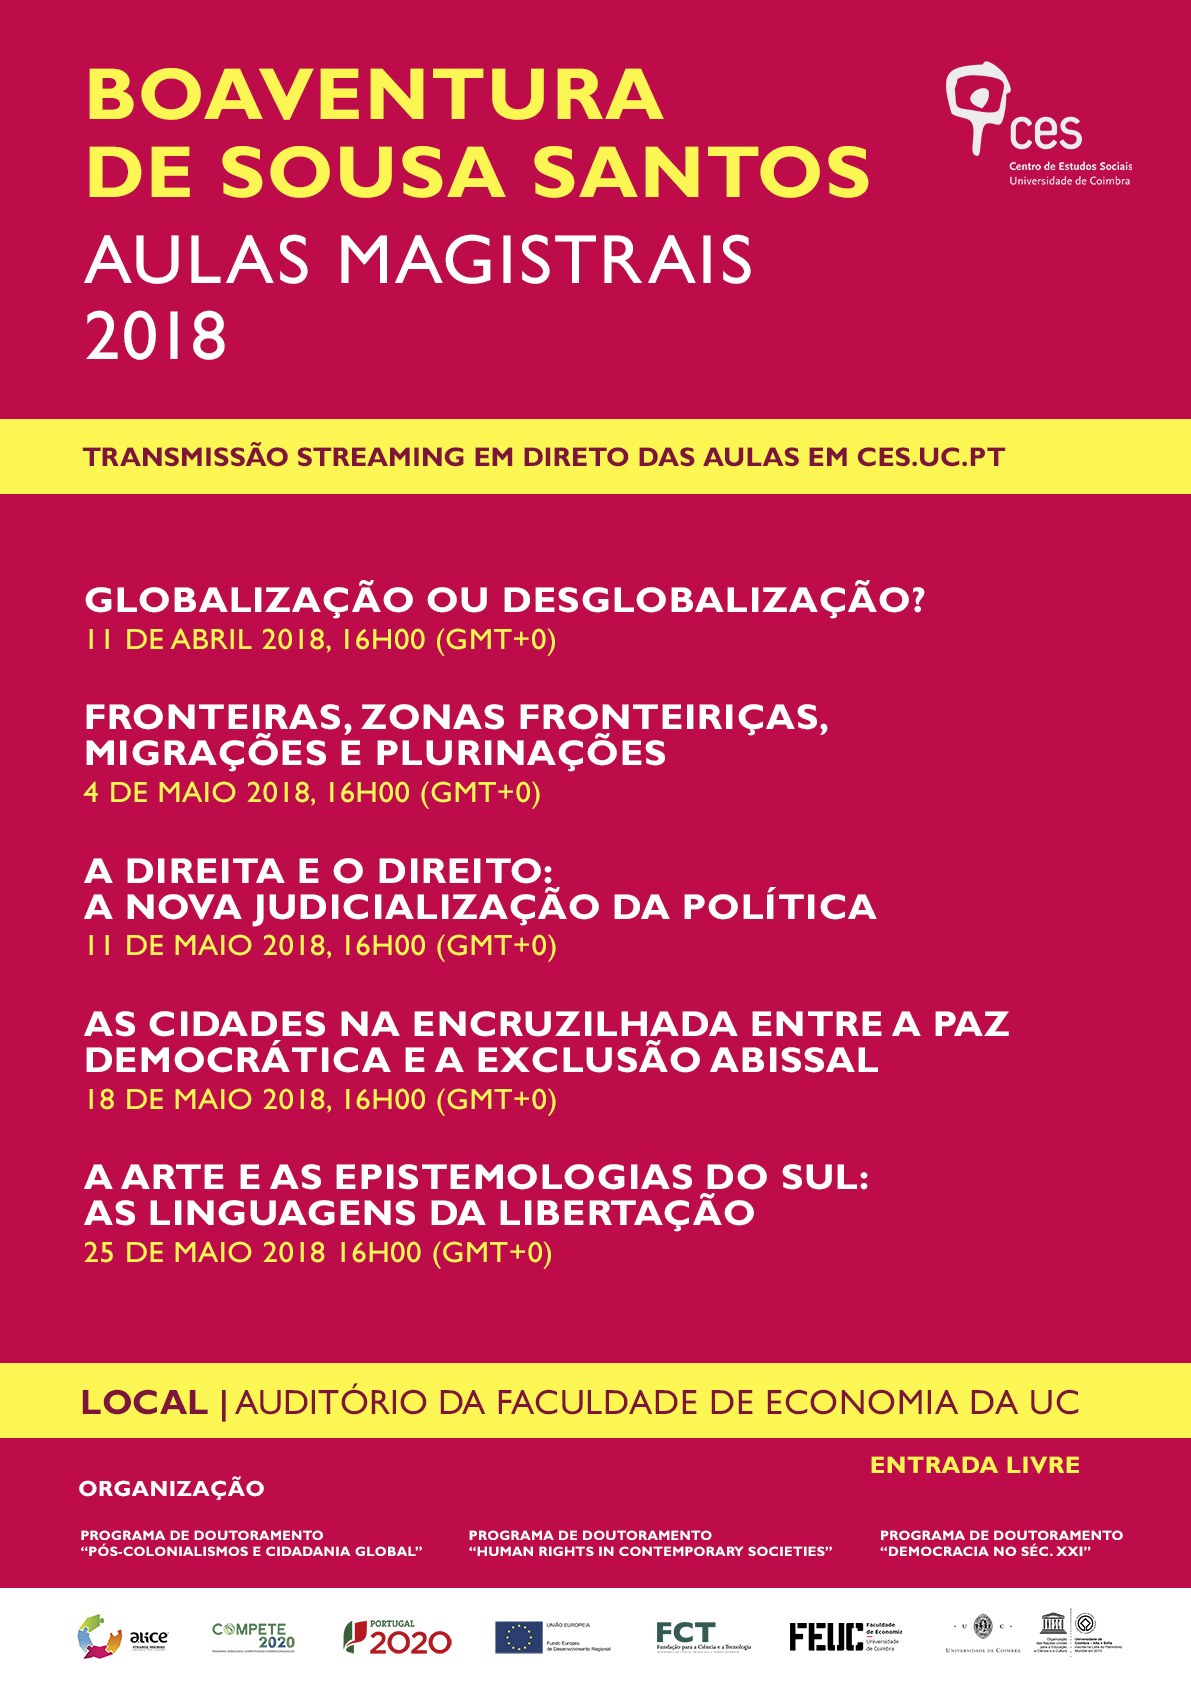 "The Right and the Law: the new judicialization of politics<span id=""edit_18826""><script>$(function() { $('#edit_18826').load( ""/myces/user/editobj.php?tipo=evento&id=18826"" ); });</script></span>"